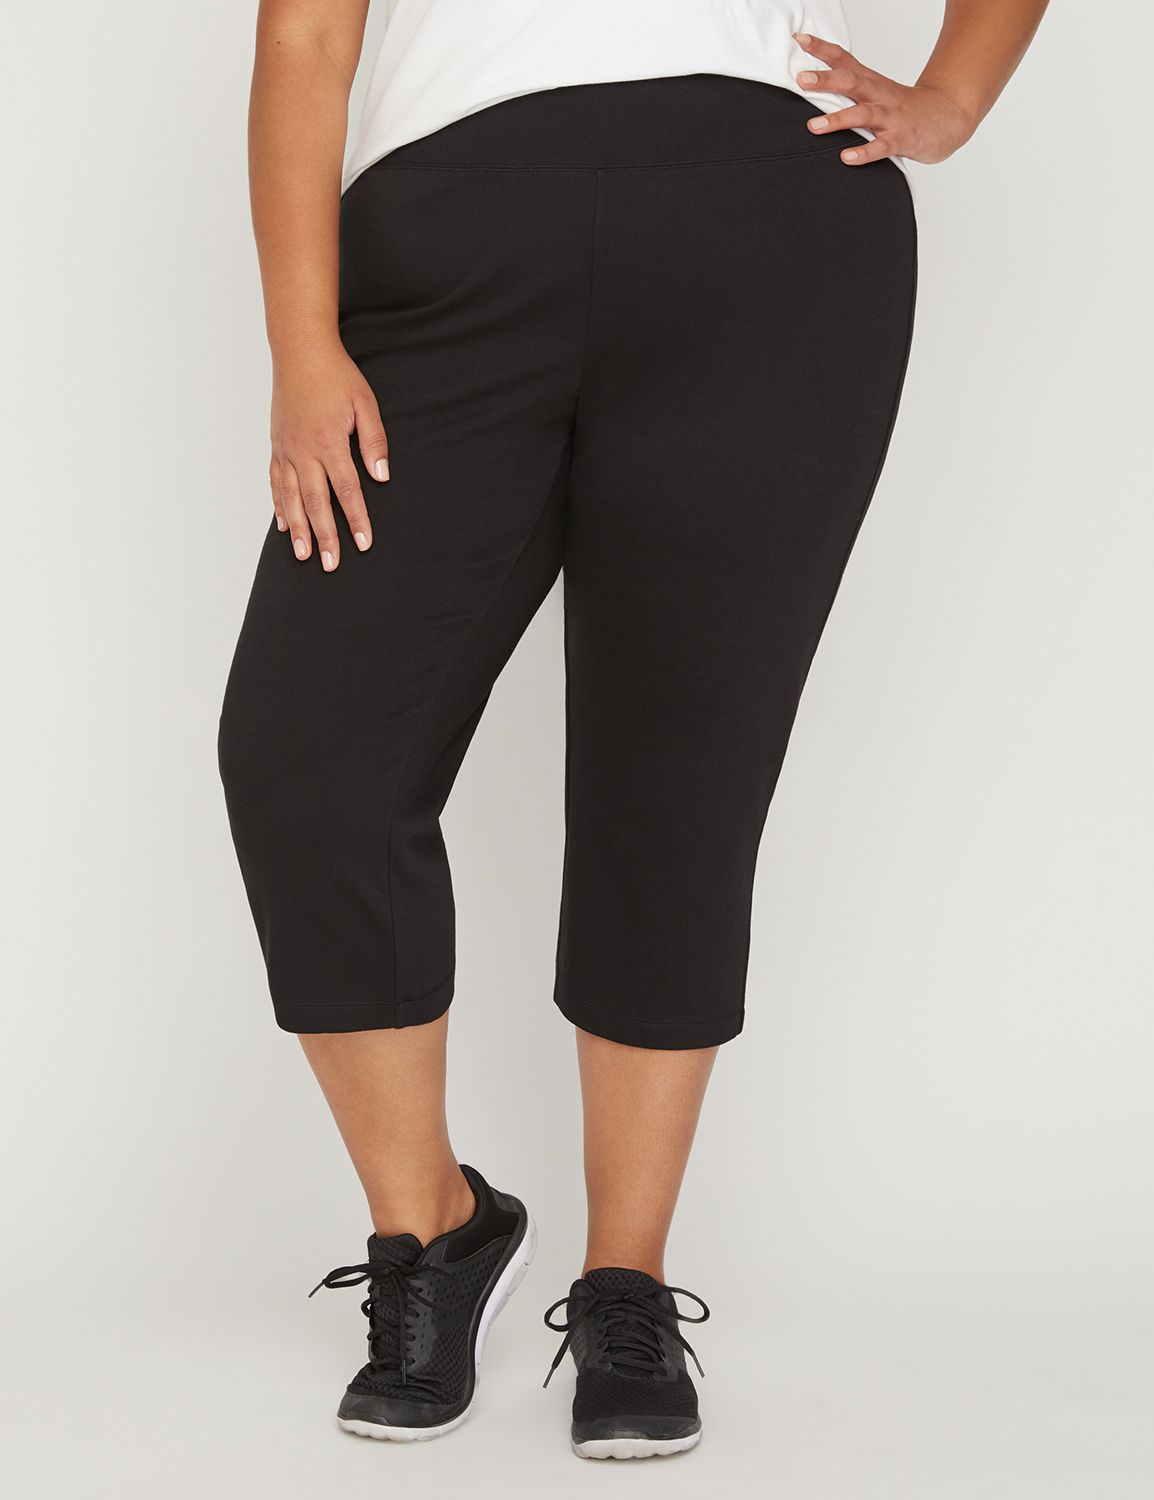 Yoga Capri Yoga Capri MP-300054226